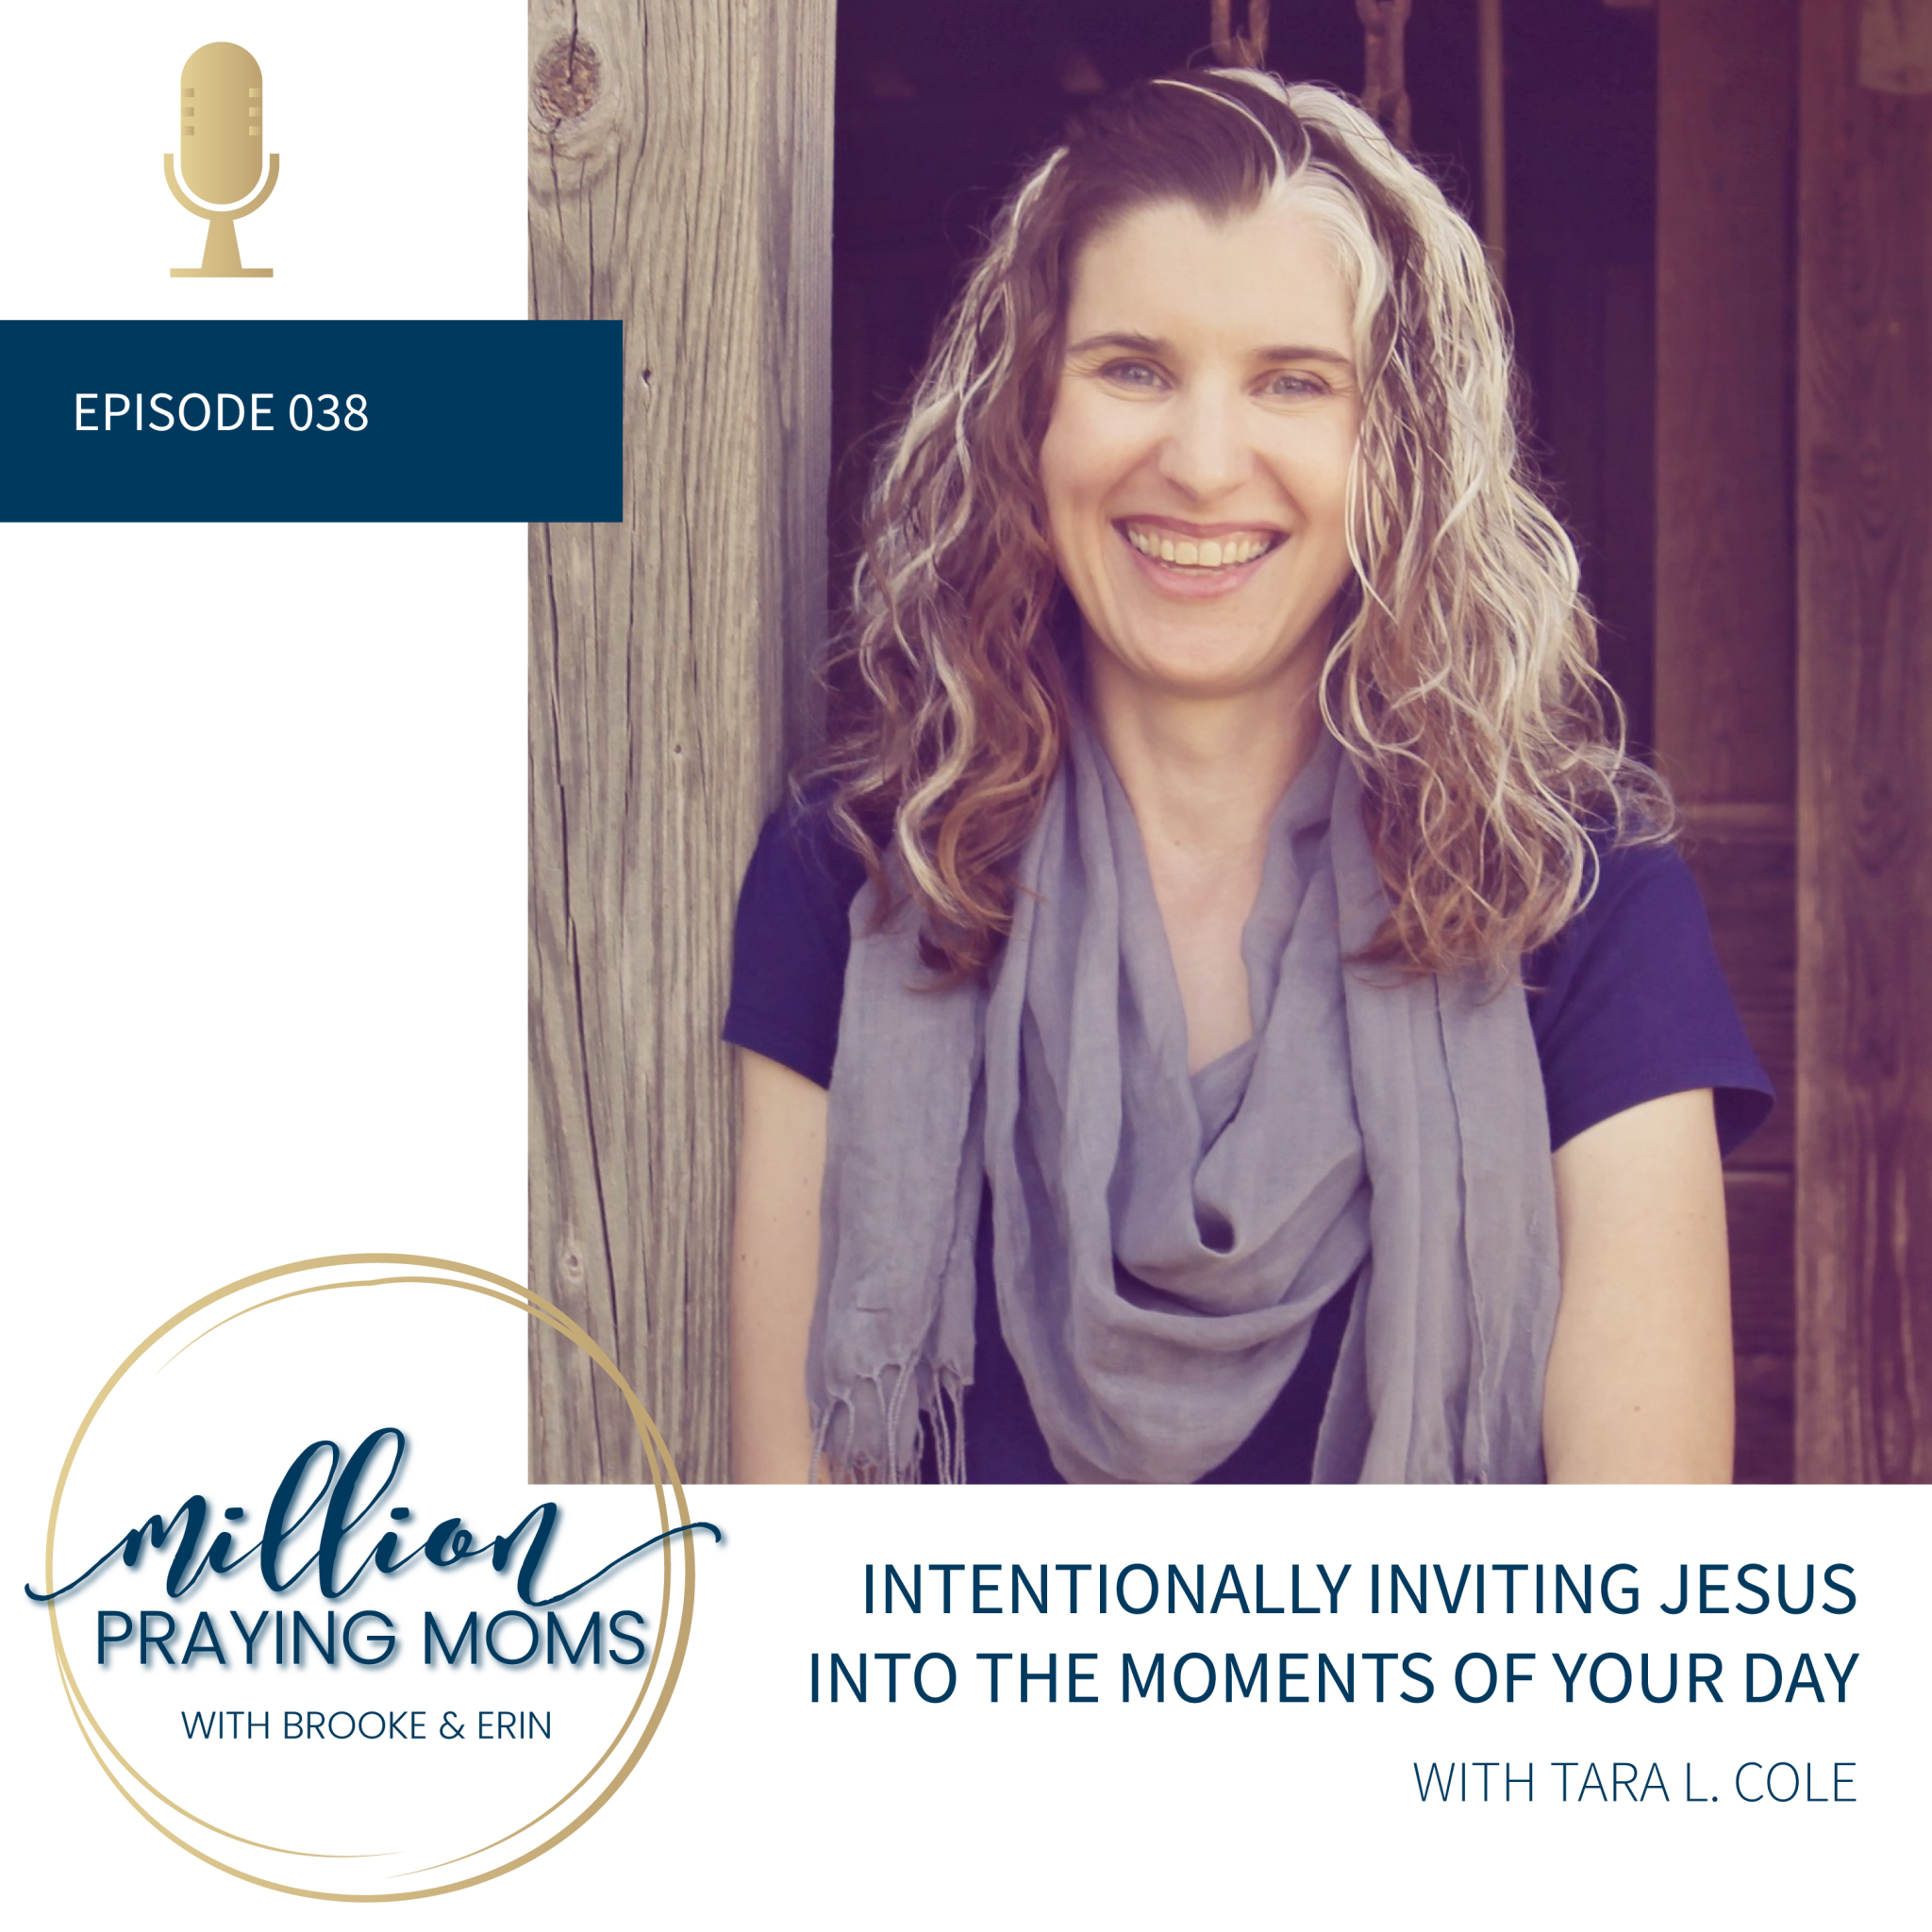 #038: Intentionally Inviting Jesus into the Moments of Your Day